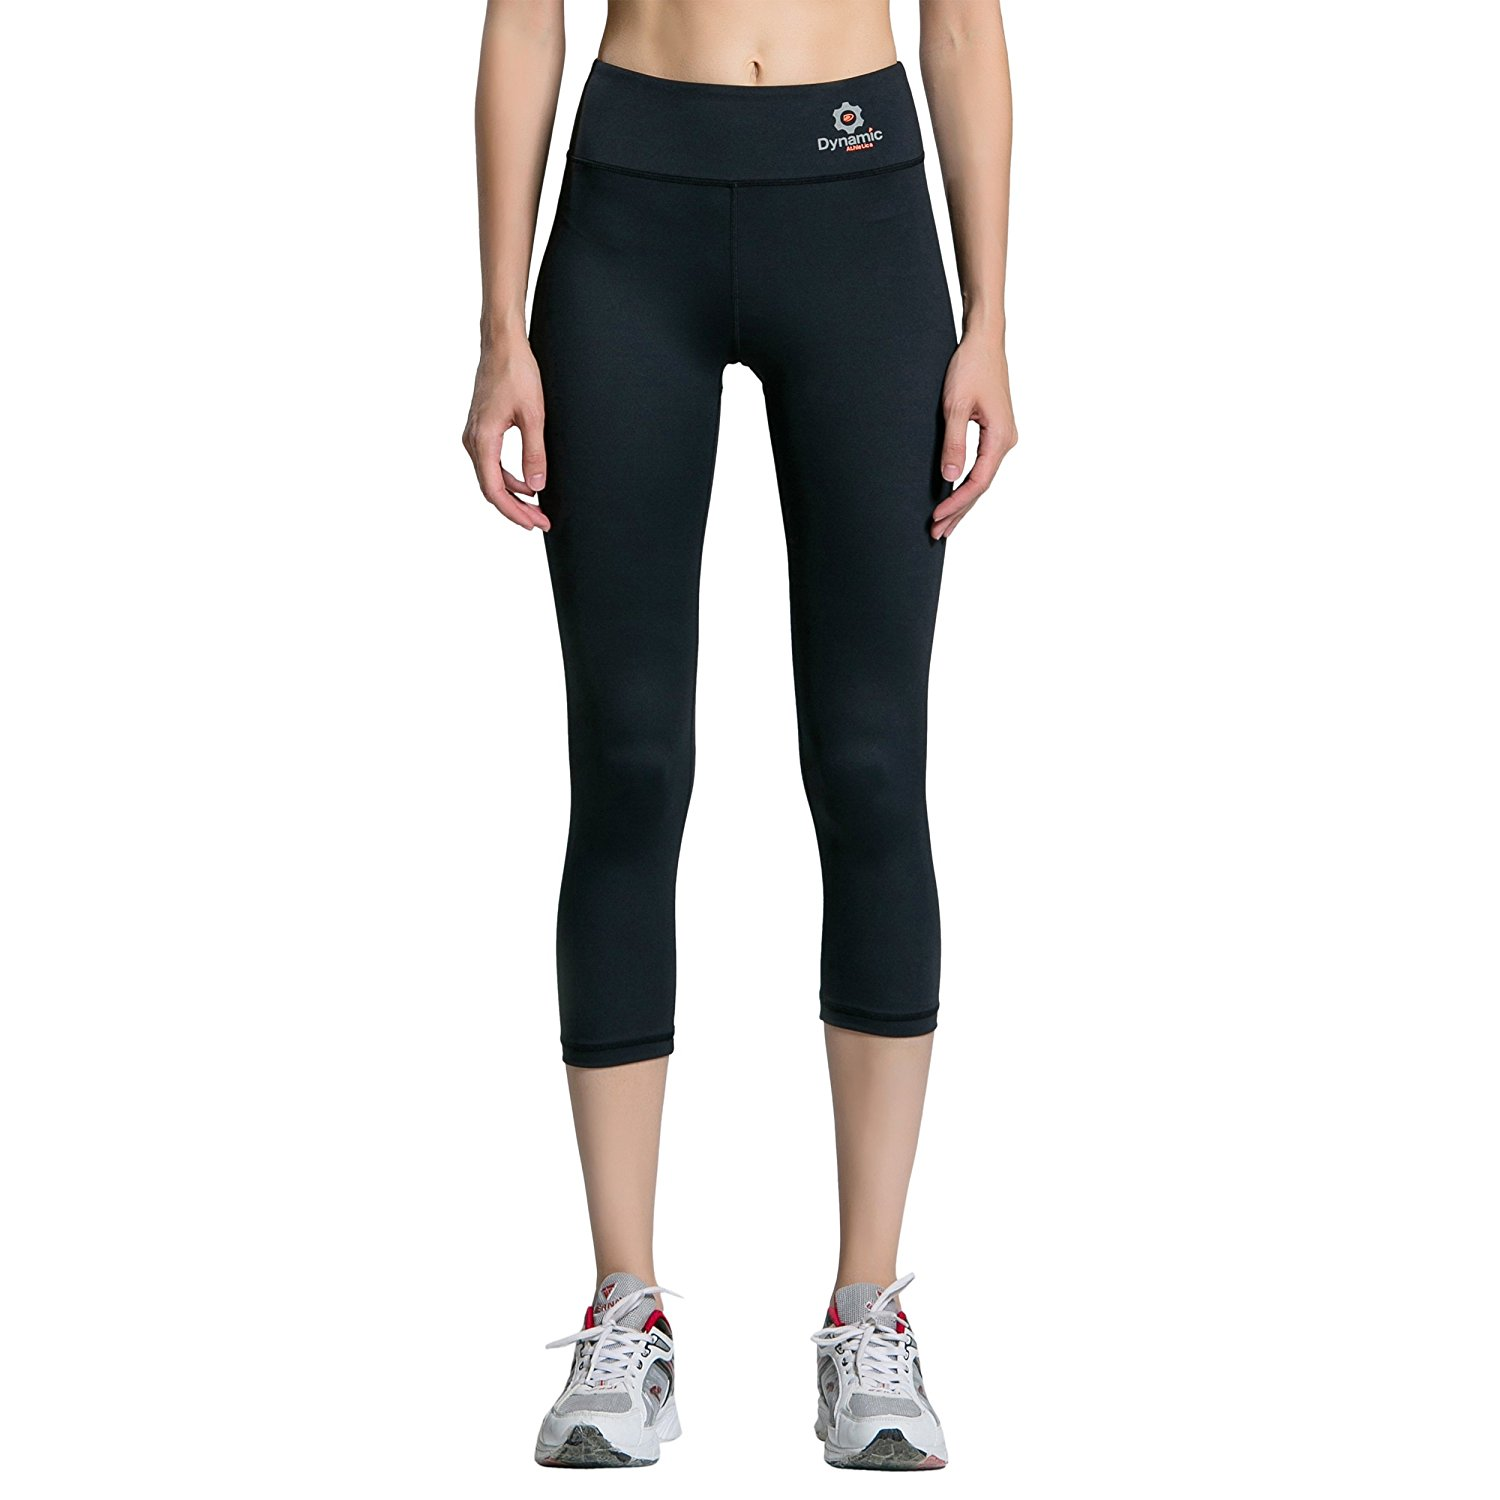 7c126ad7378b5 Dynamic Athletica Compression Capri Pants w Hidden Pocket No See-Thru UV  Protection & Gusseted